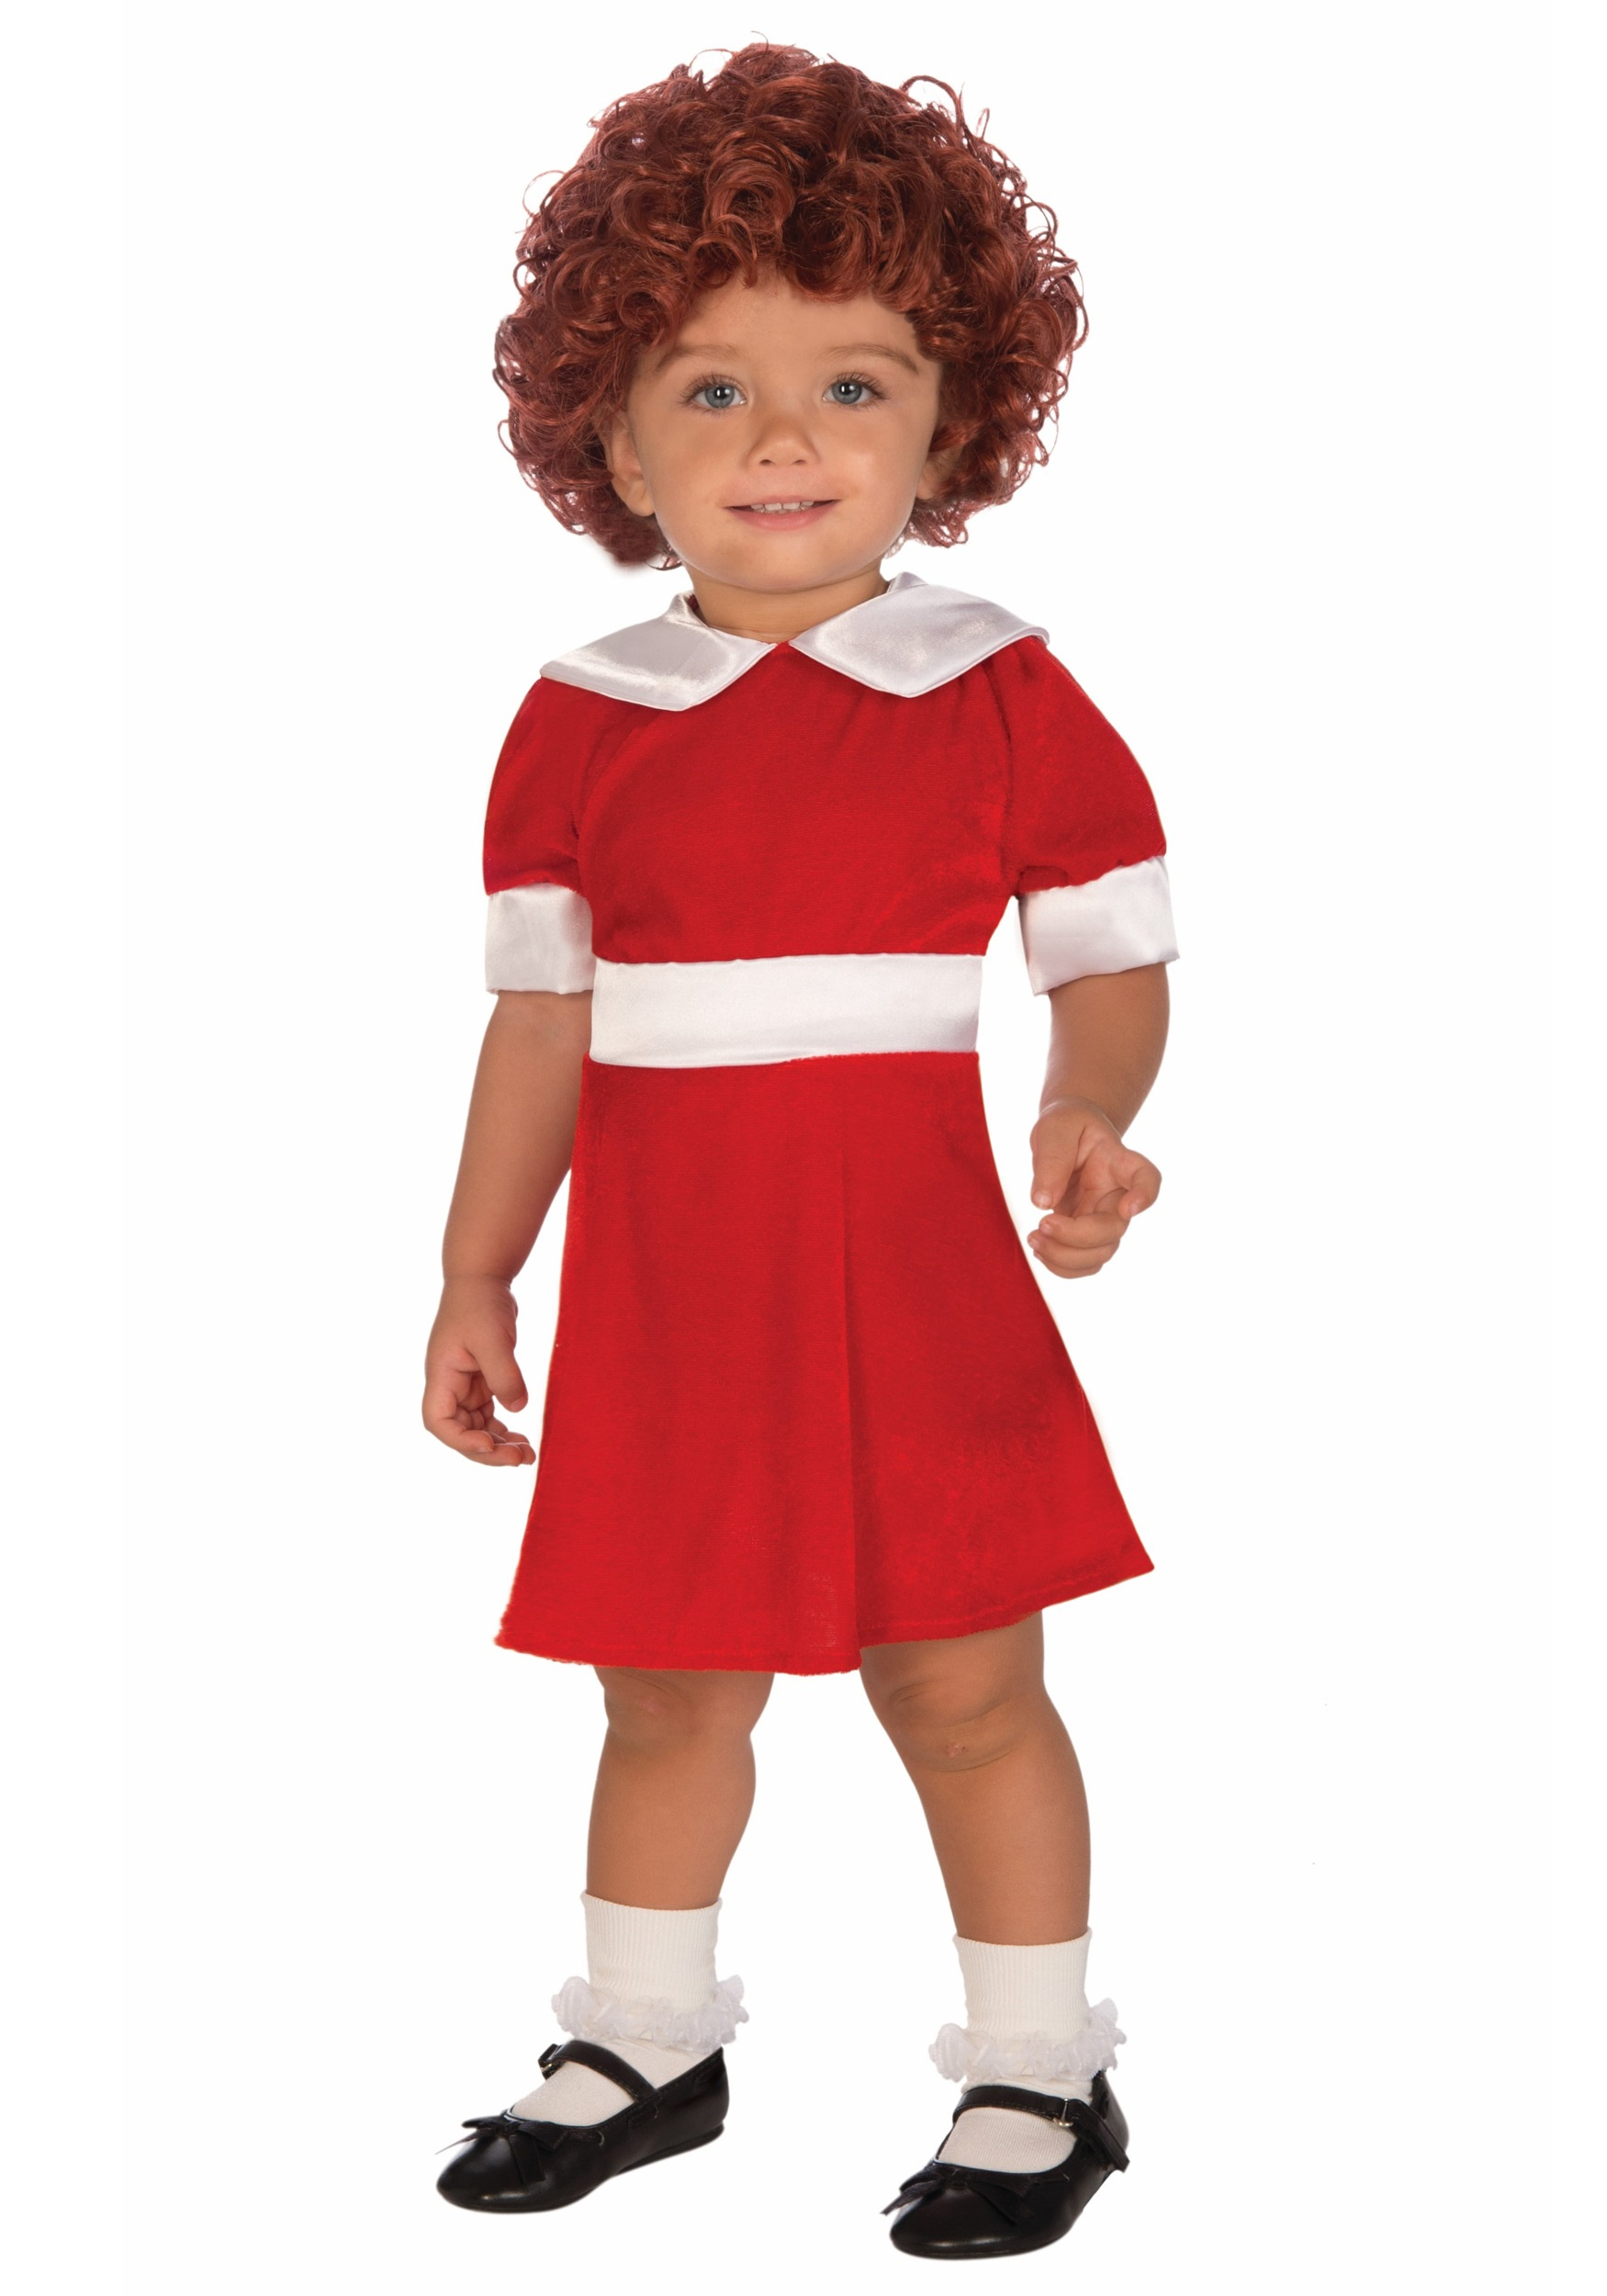 Toddler Annie Costume  sc 1 st  Halloween Costumes & Toddler Annie Costume - Halloween Costumes